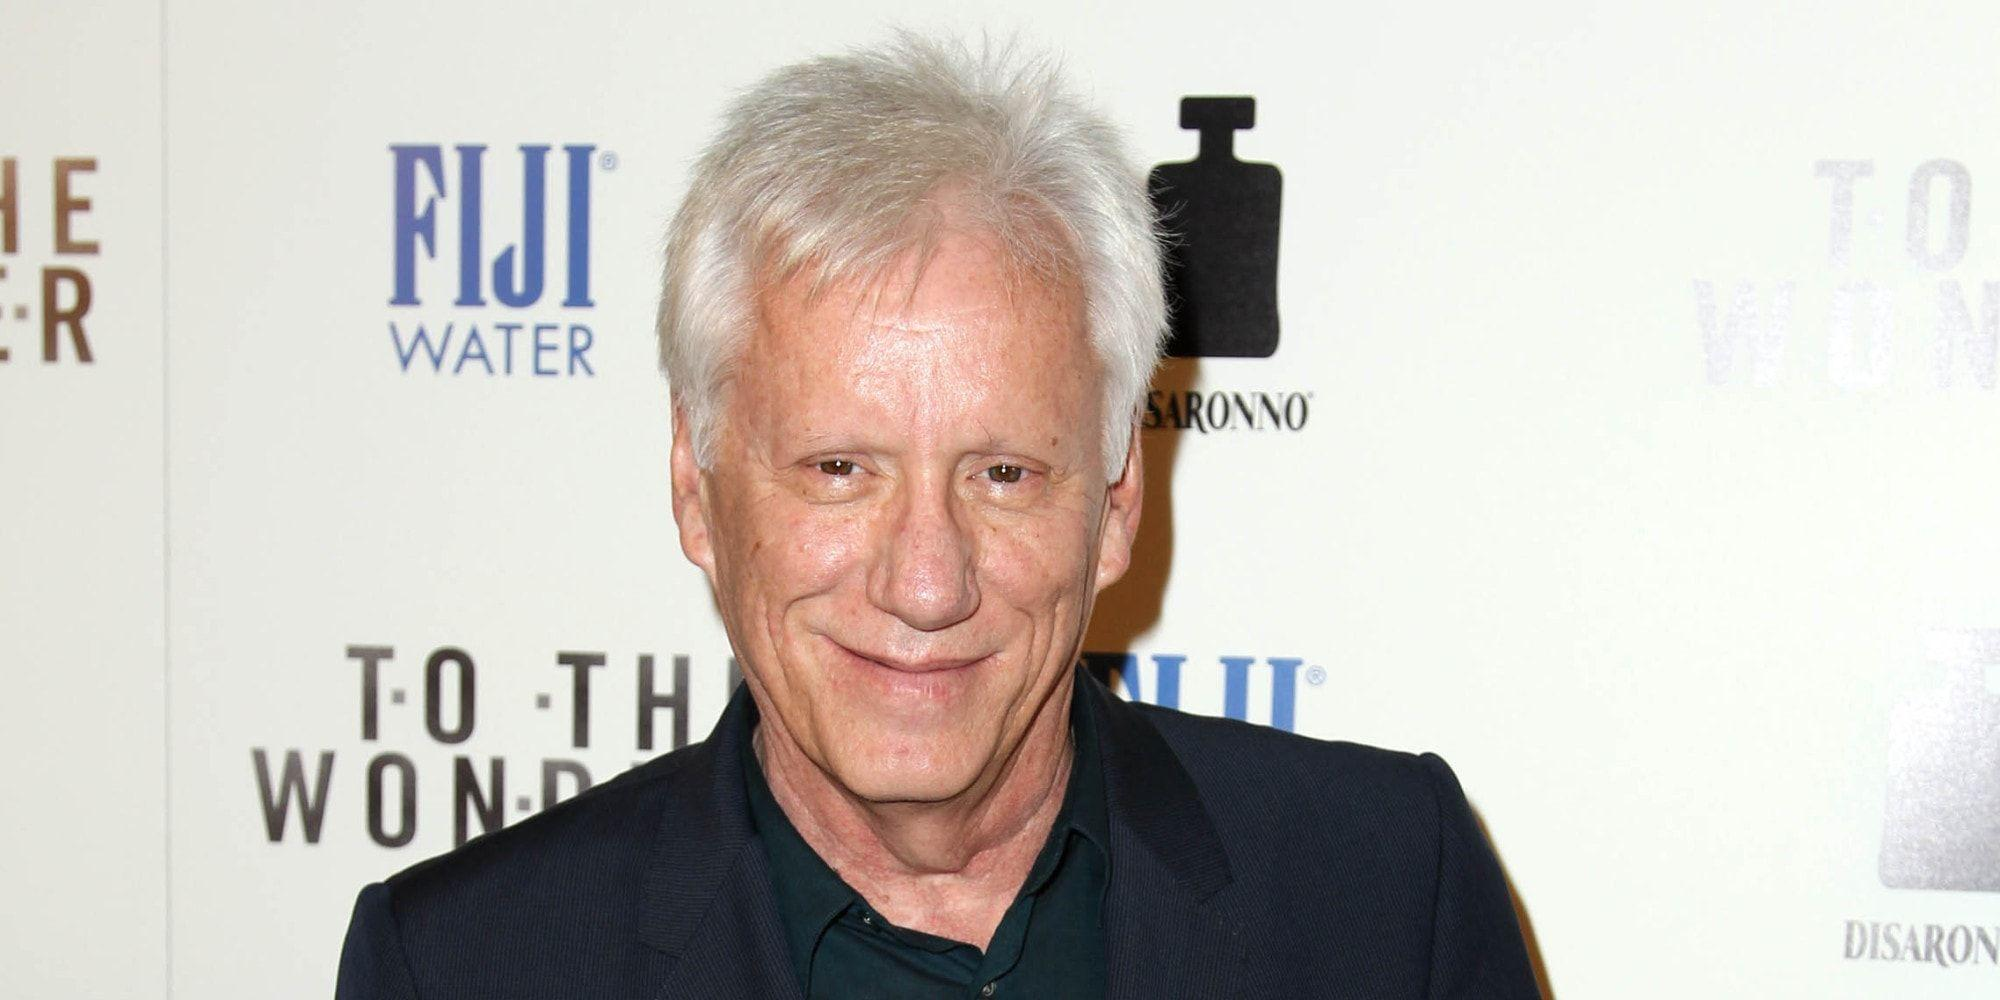 James Woods HD Desktop Wallpapers | 7wallpapers.net